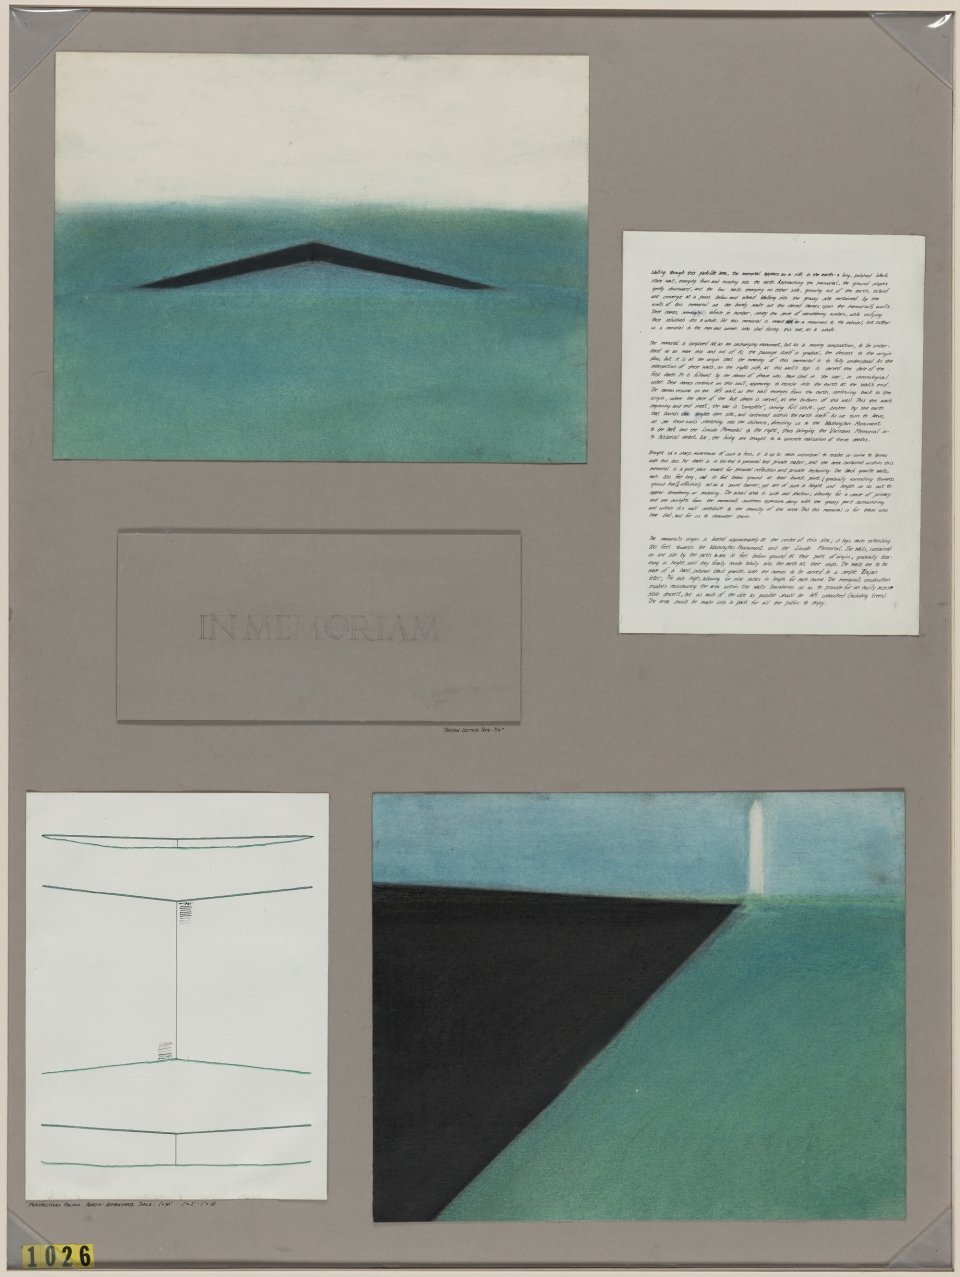 A collage of the memorial's architectural drawings and Maya Lin's one-page written summary on her concept.